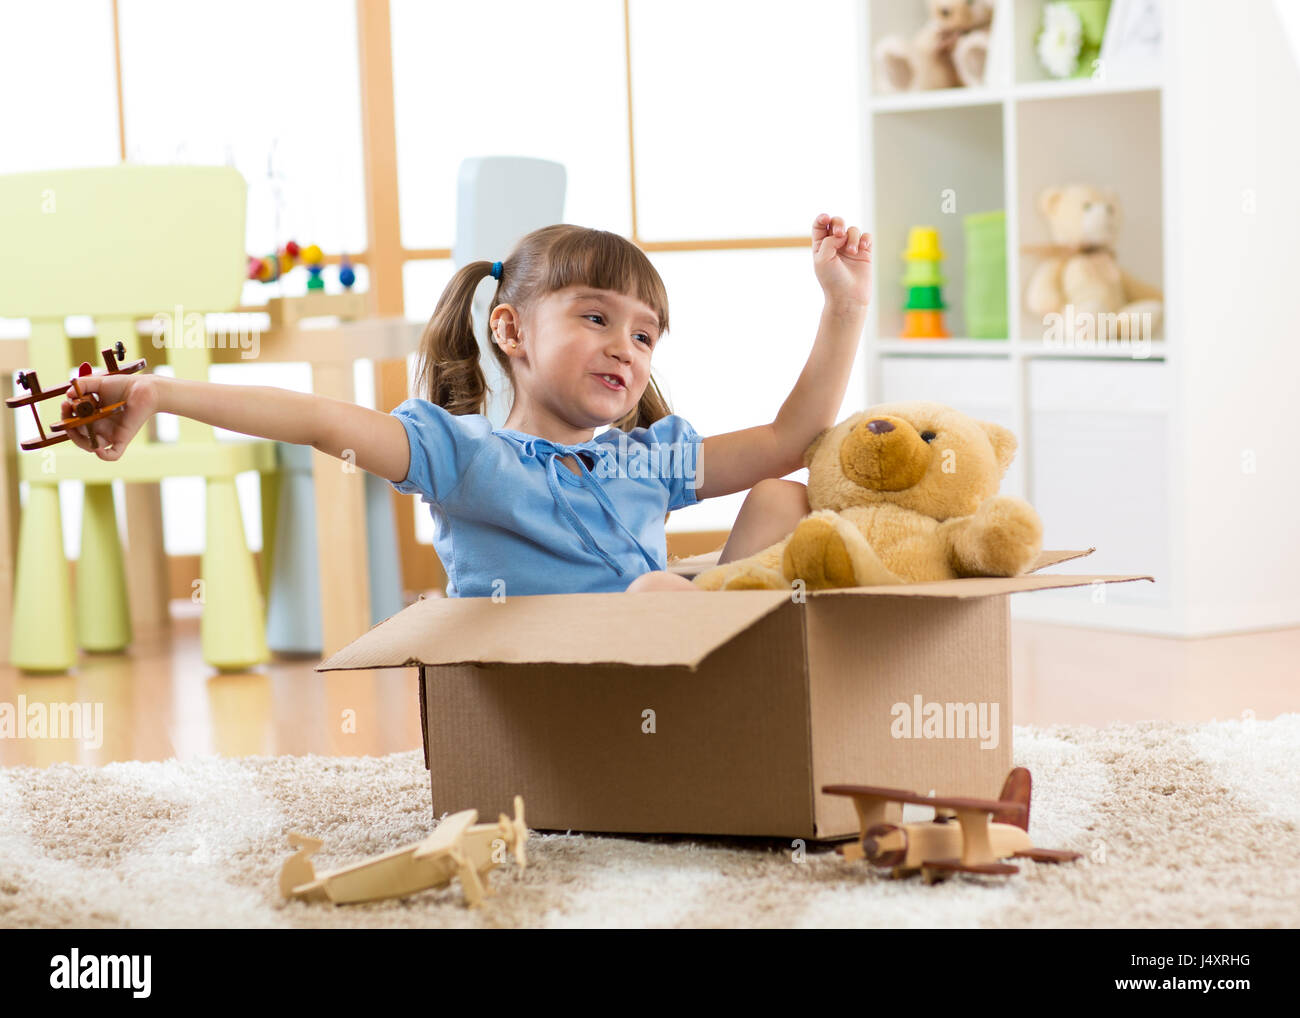 Child playing with plane toy at home. Travel, freedom and imagination concept. Stock Photo